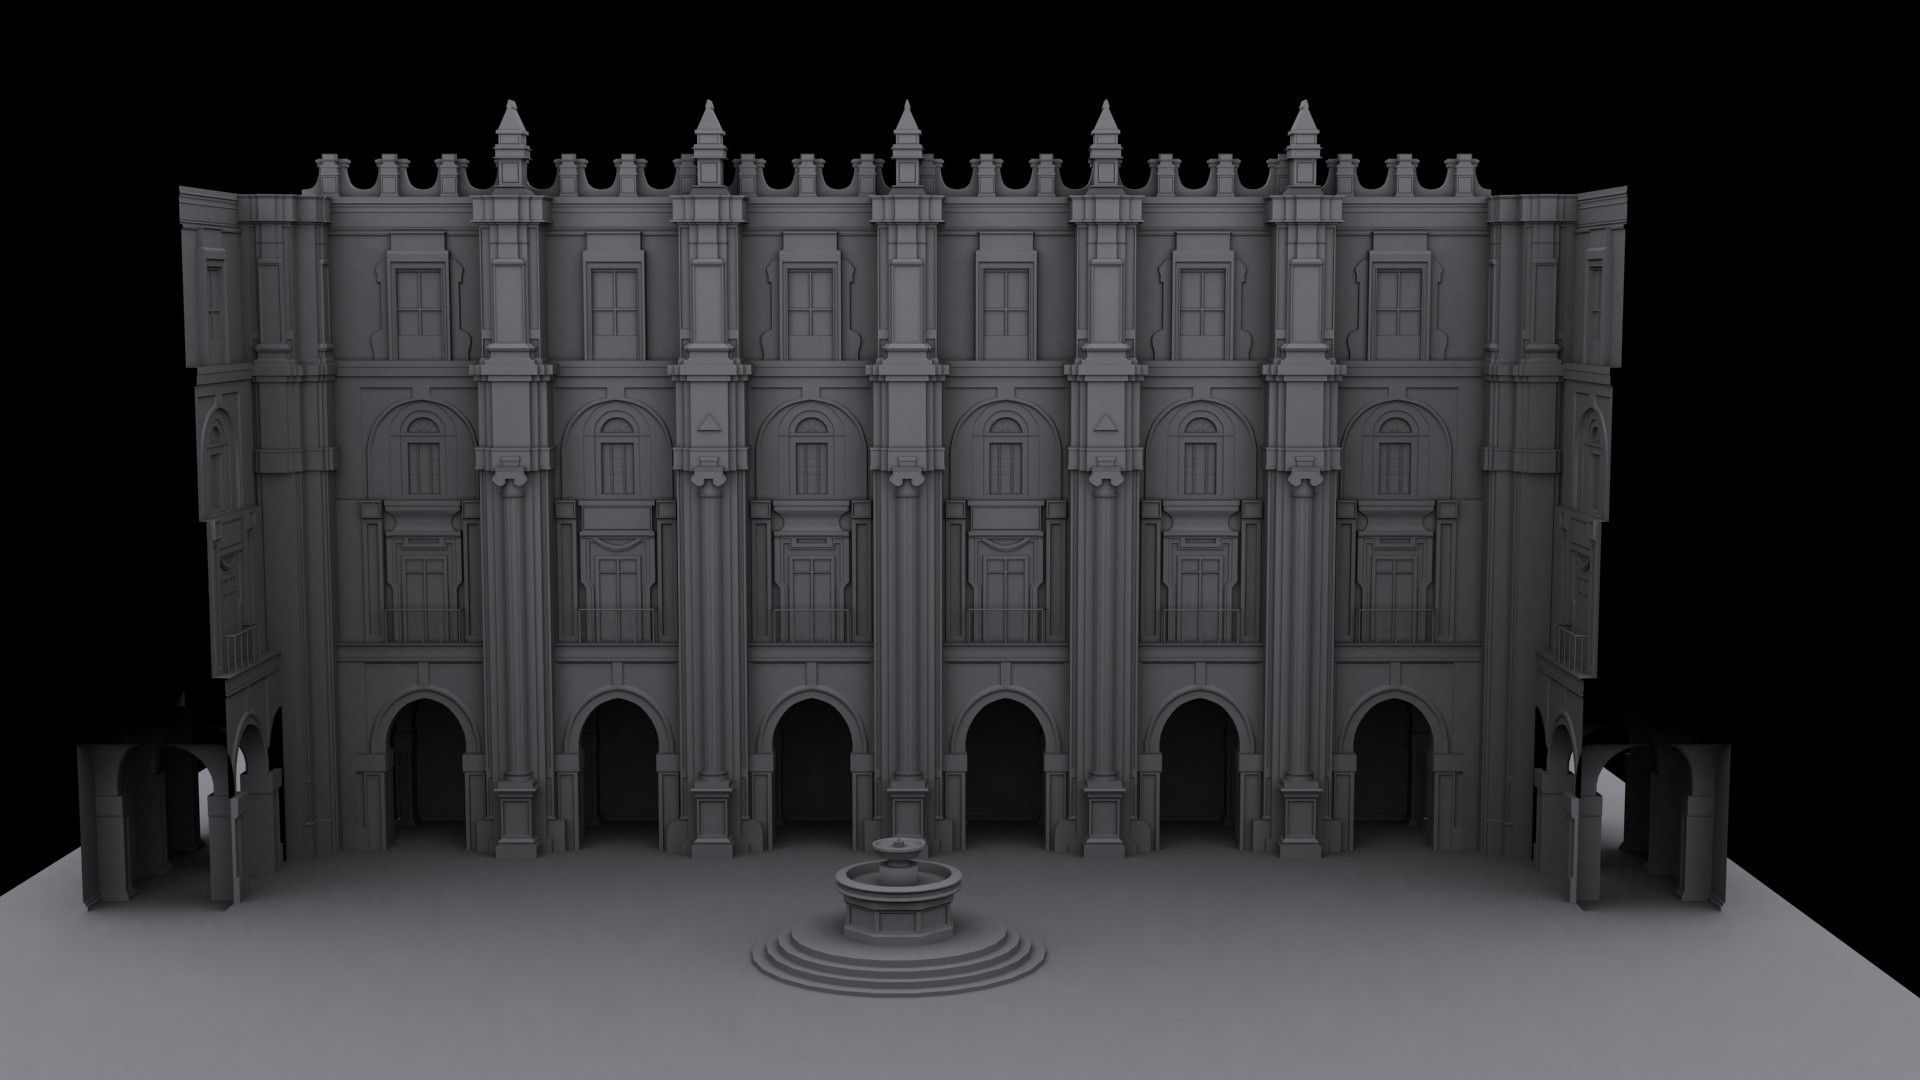 3D Courtyard Environment C&C welcome - Polycount Forum